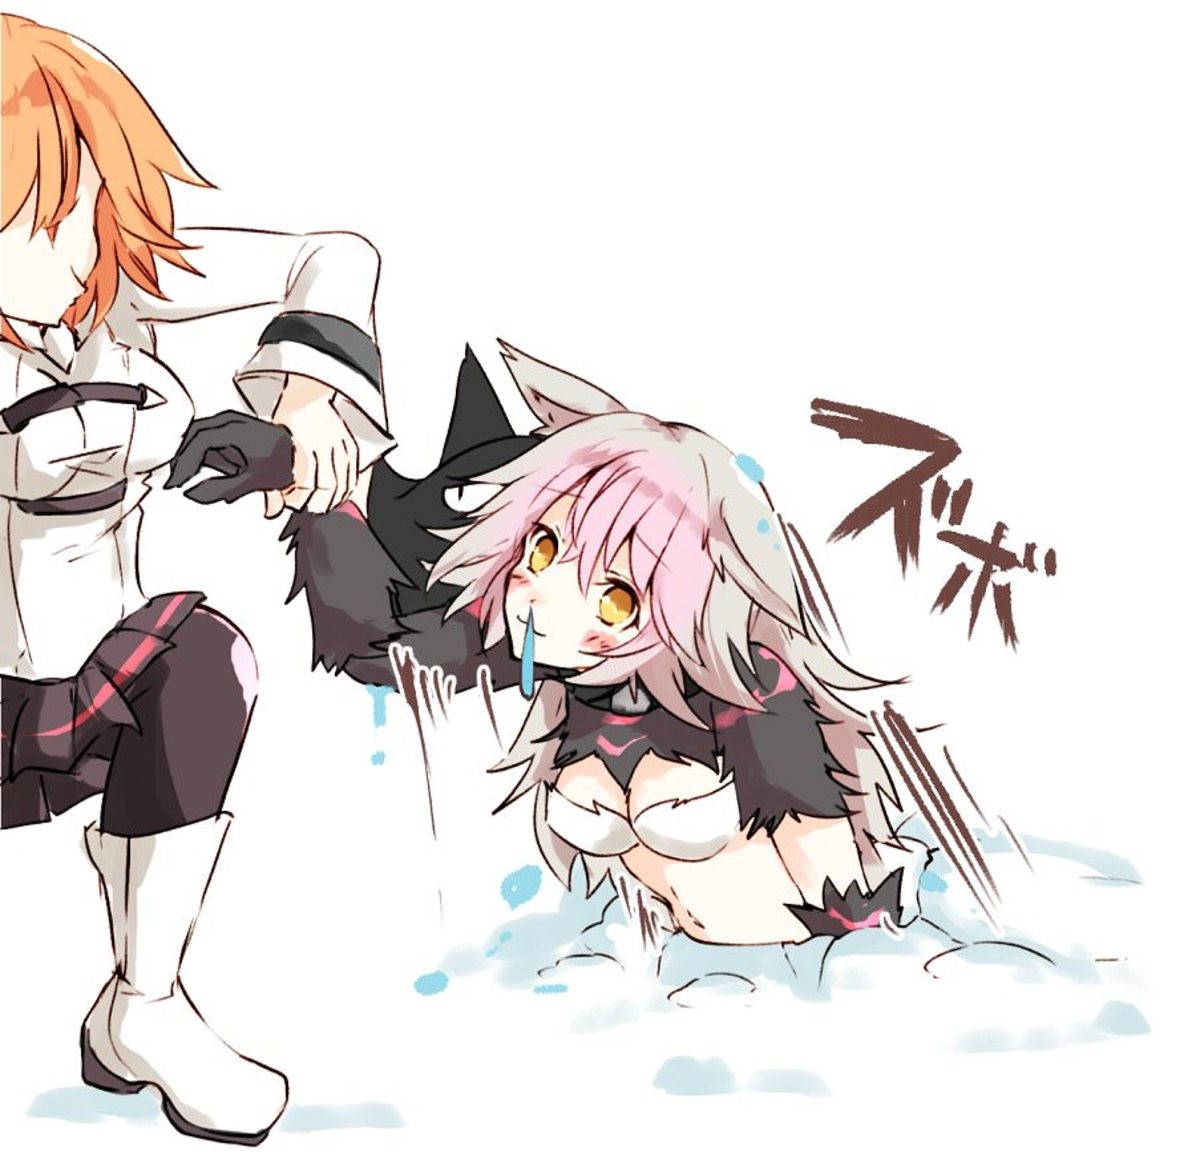 Frozen Kitty. Source join list: Fate (421 subs)Mention History join list: